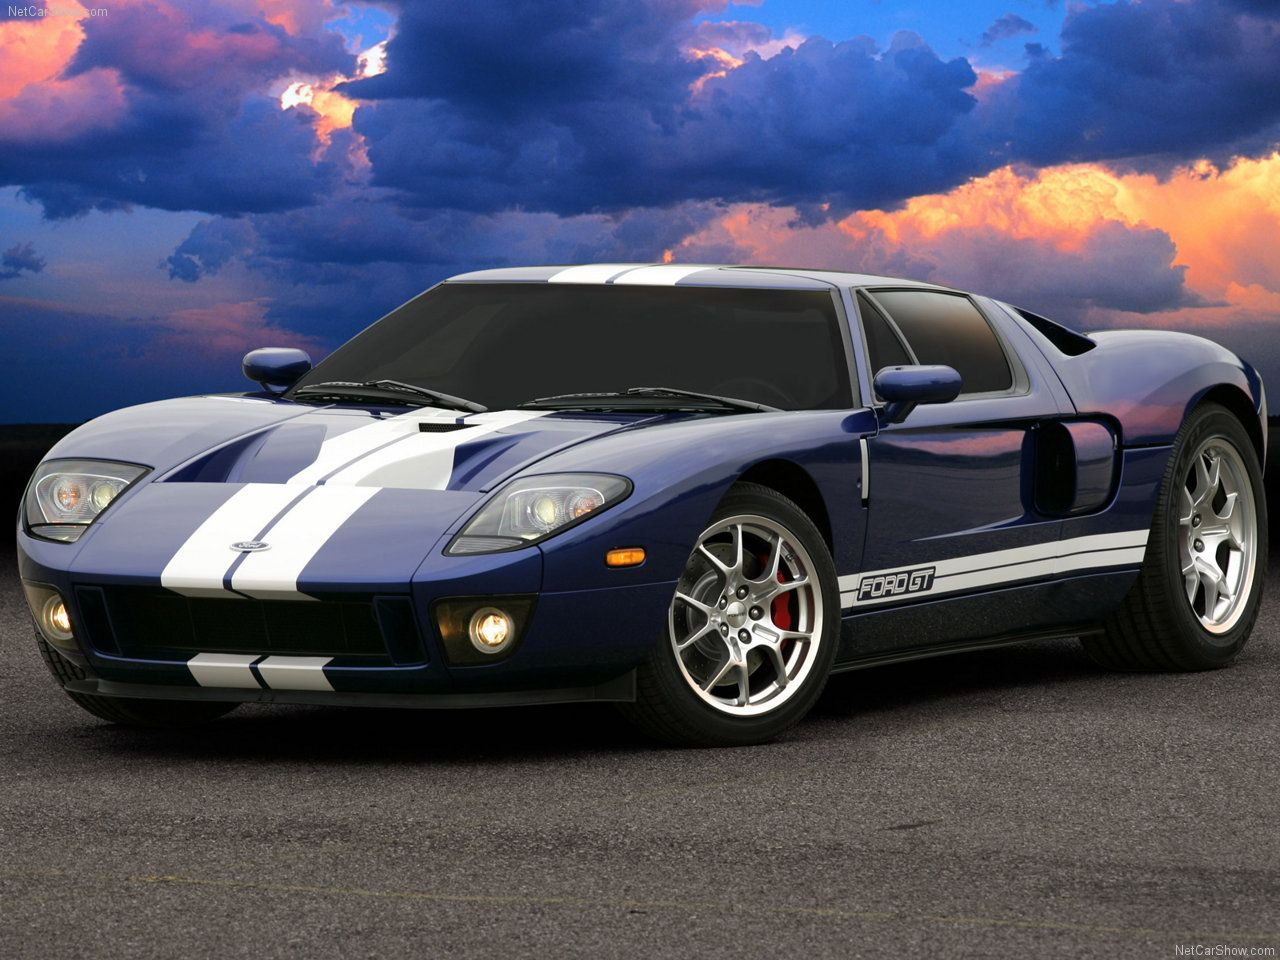 2005 Ford Gt Ford Gt Sports Car Car Wallpapers